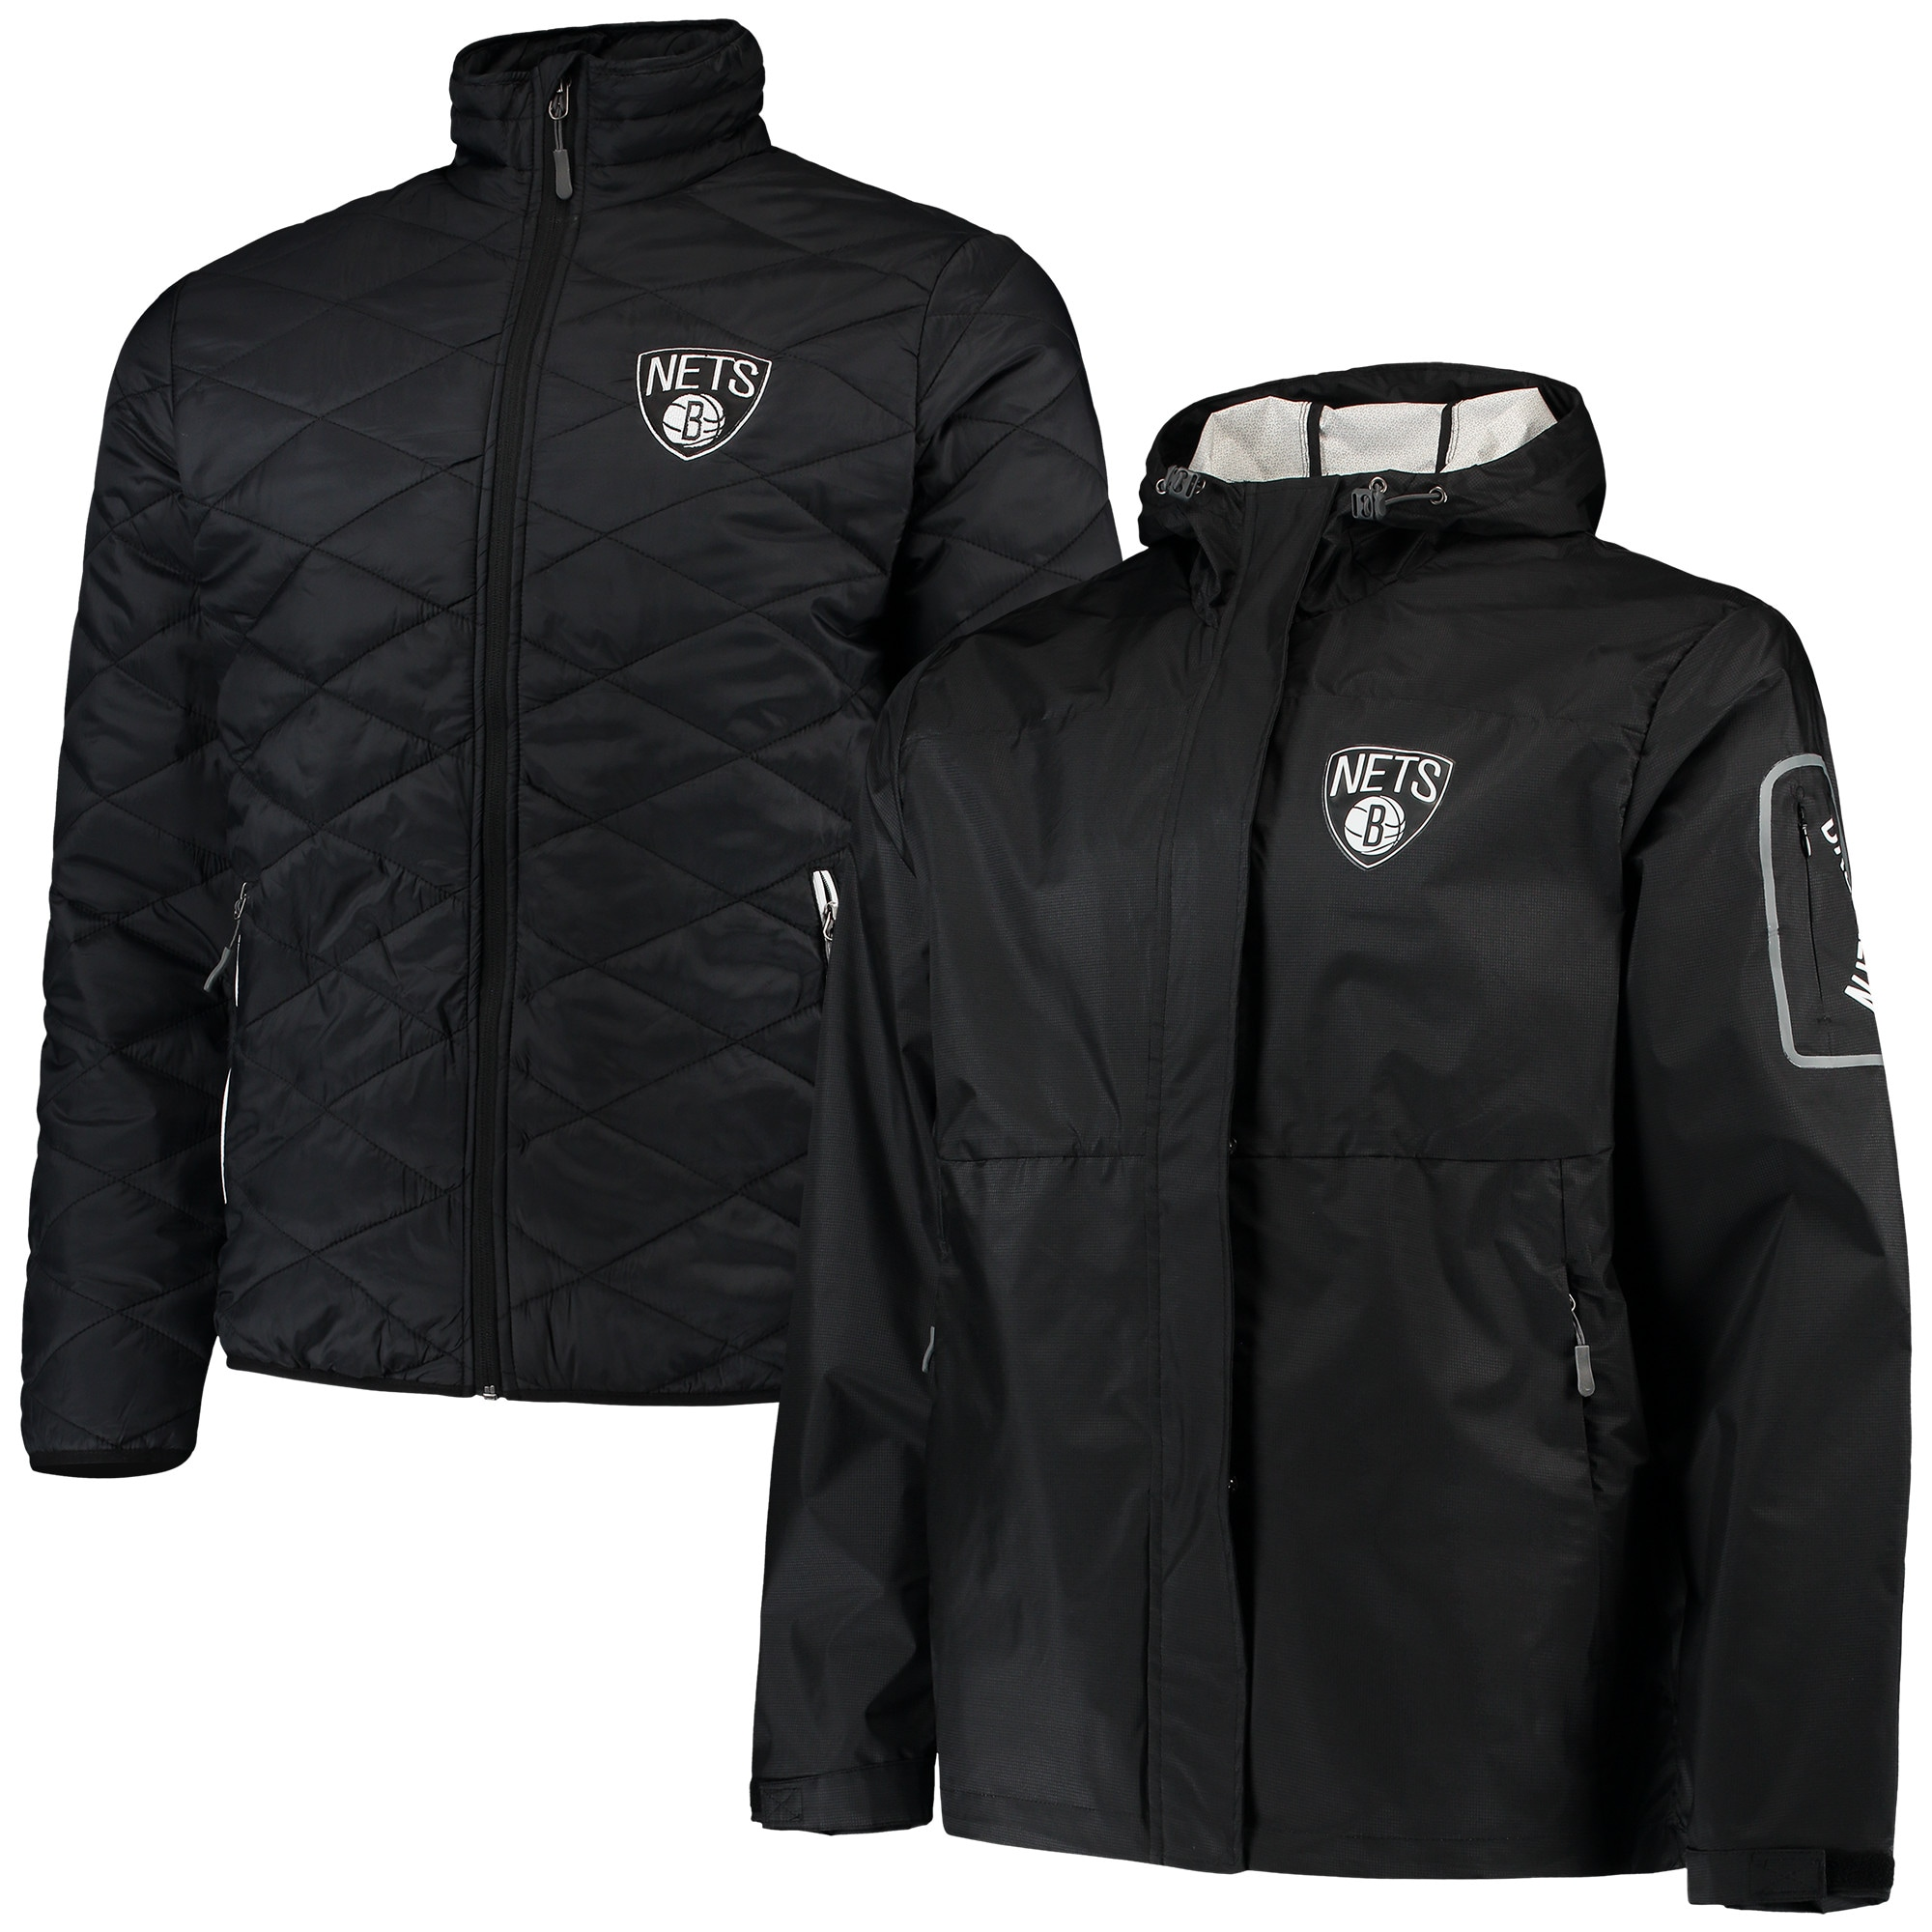 Brooklyn Nets G-III Sports by Carl Banks Acclimation 3-in-1 Systems Full-Zip Jacket - Black